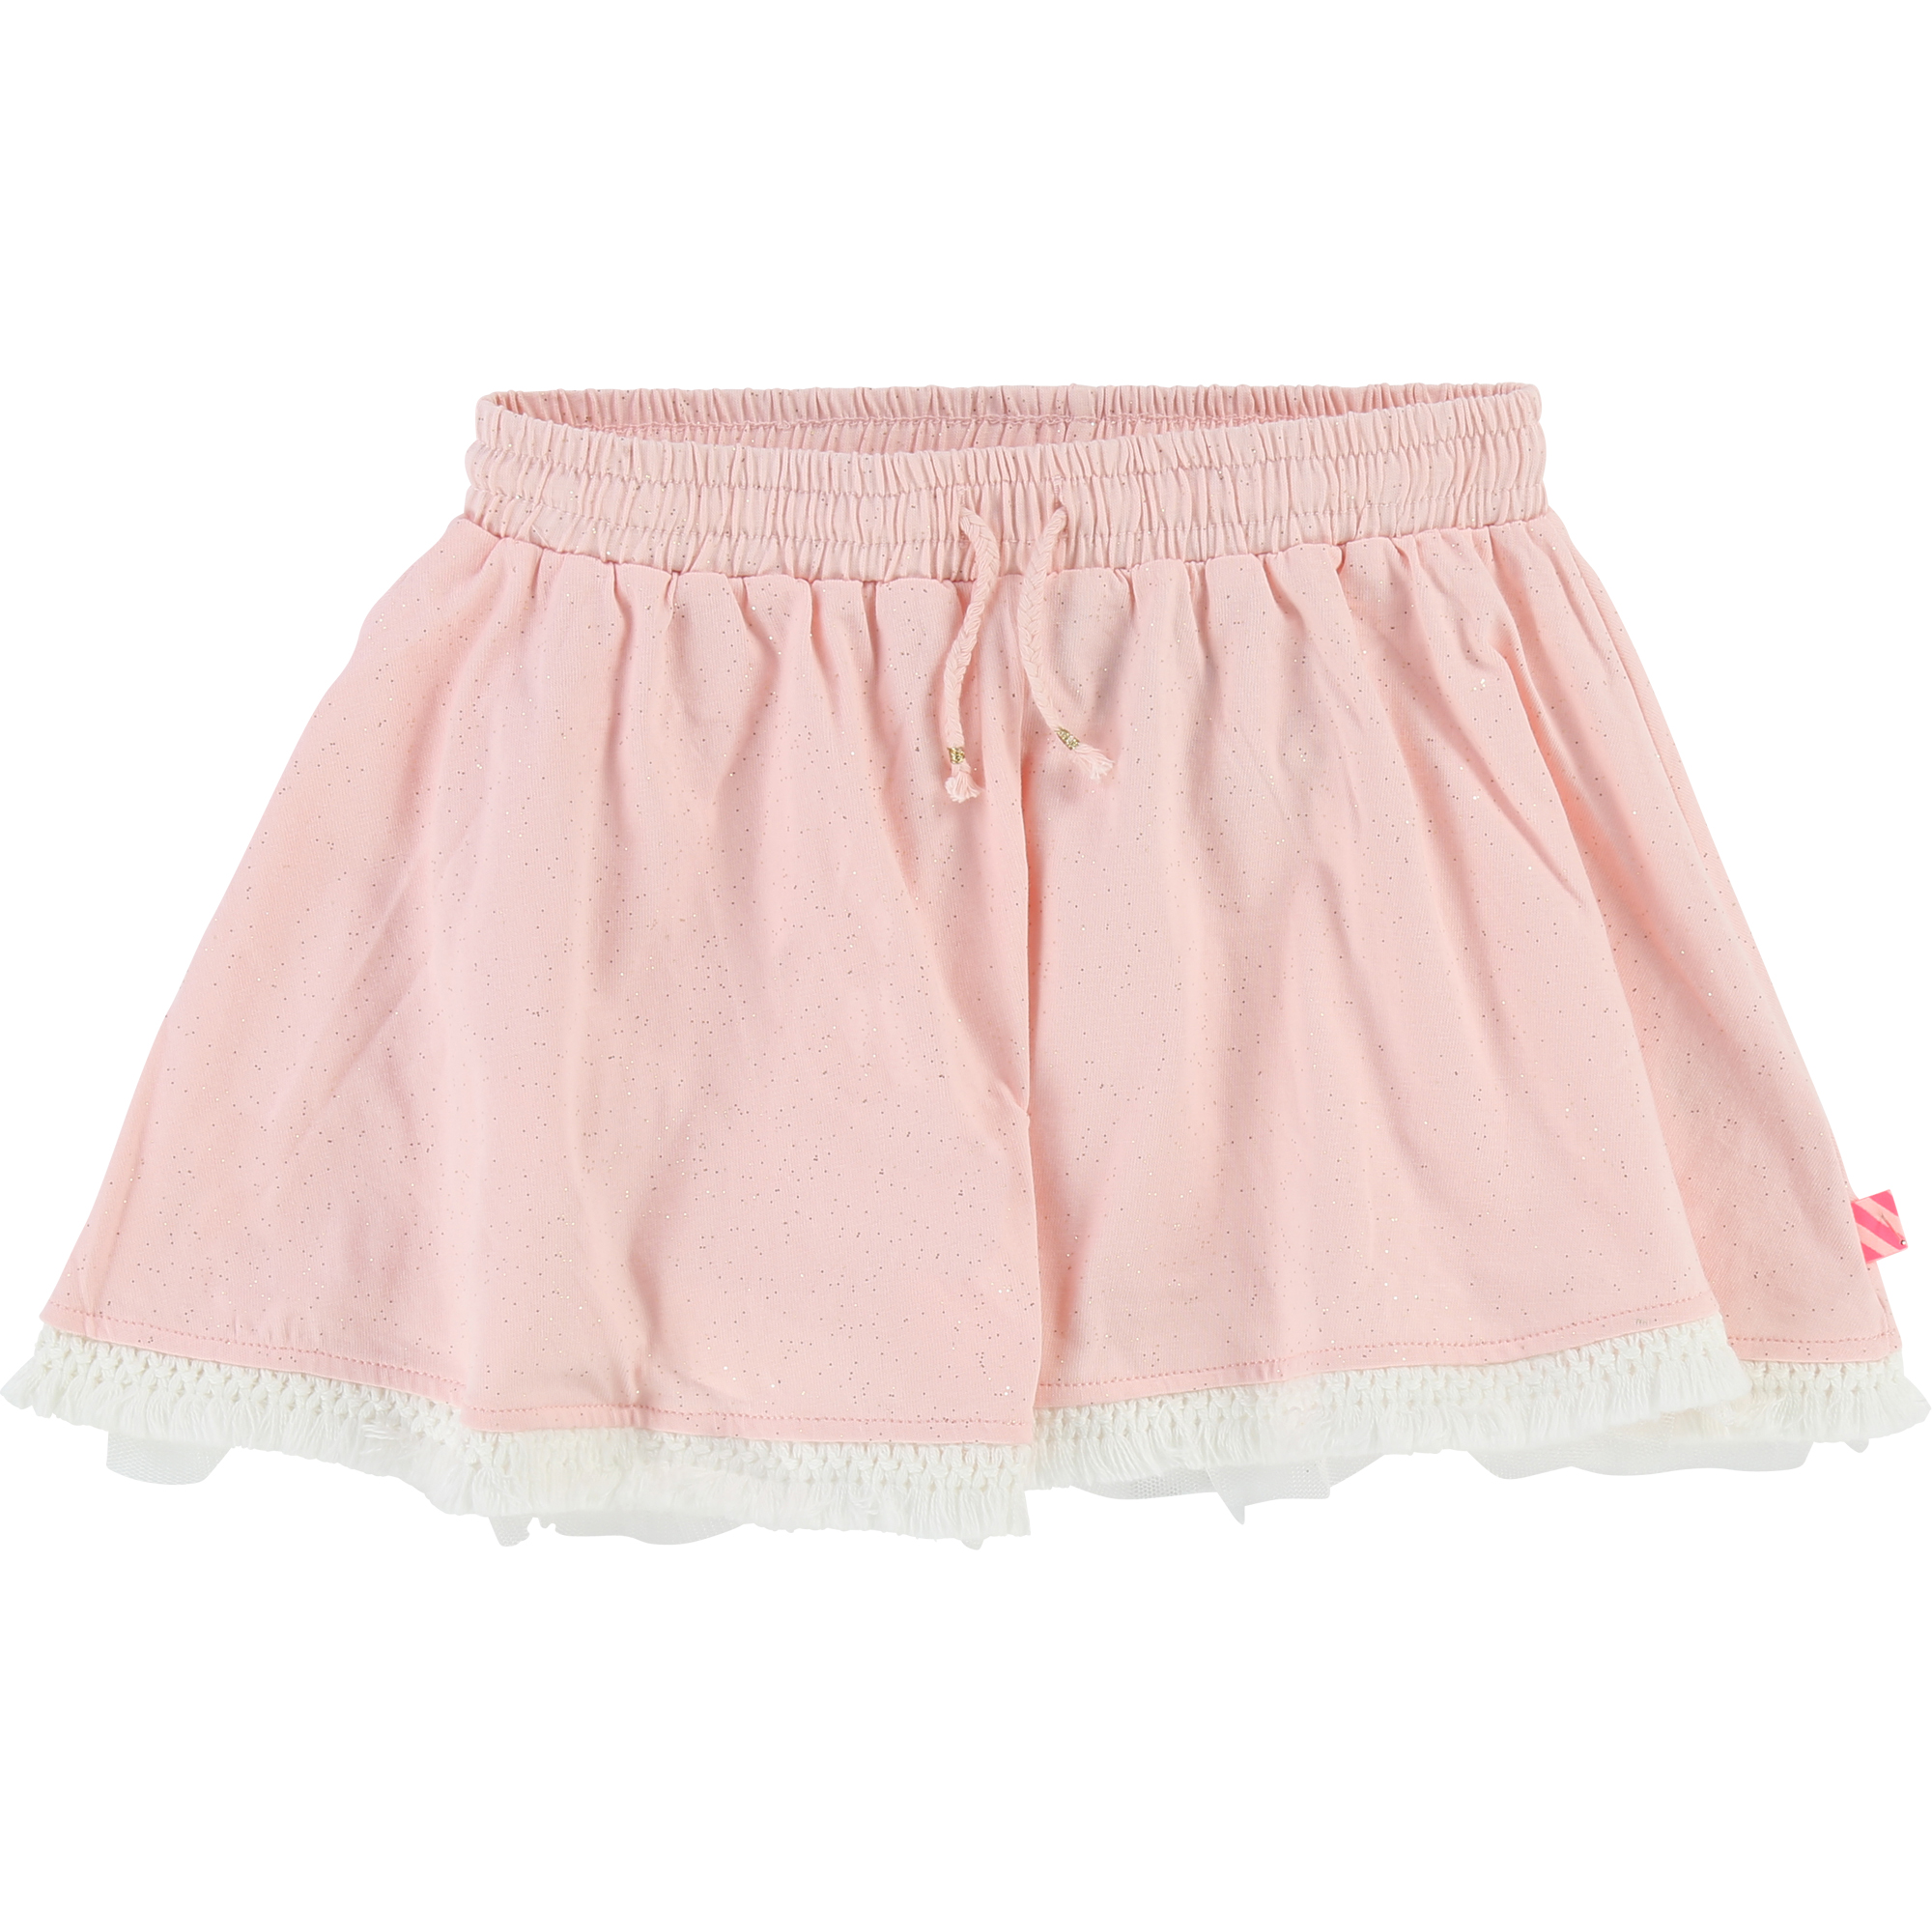 Billieblush  - SPRING  SKIRT - Clothing